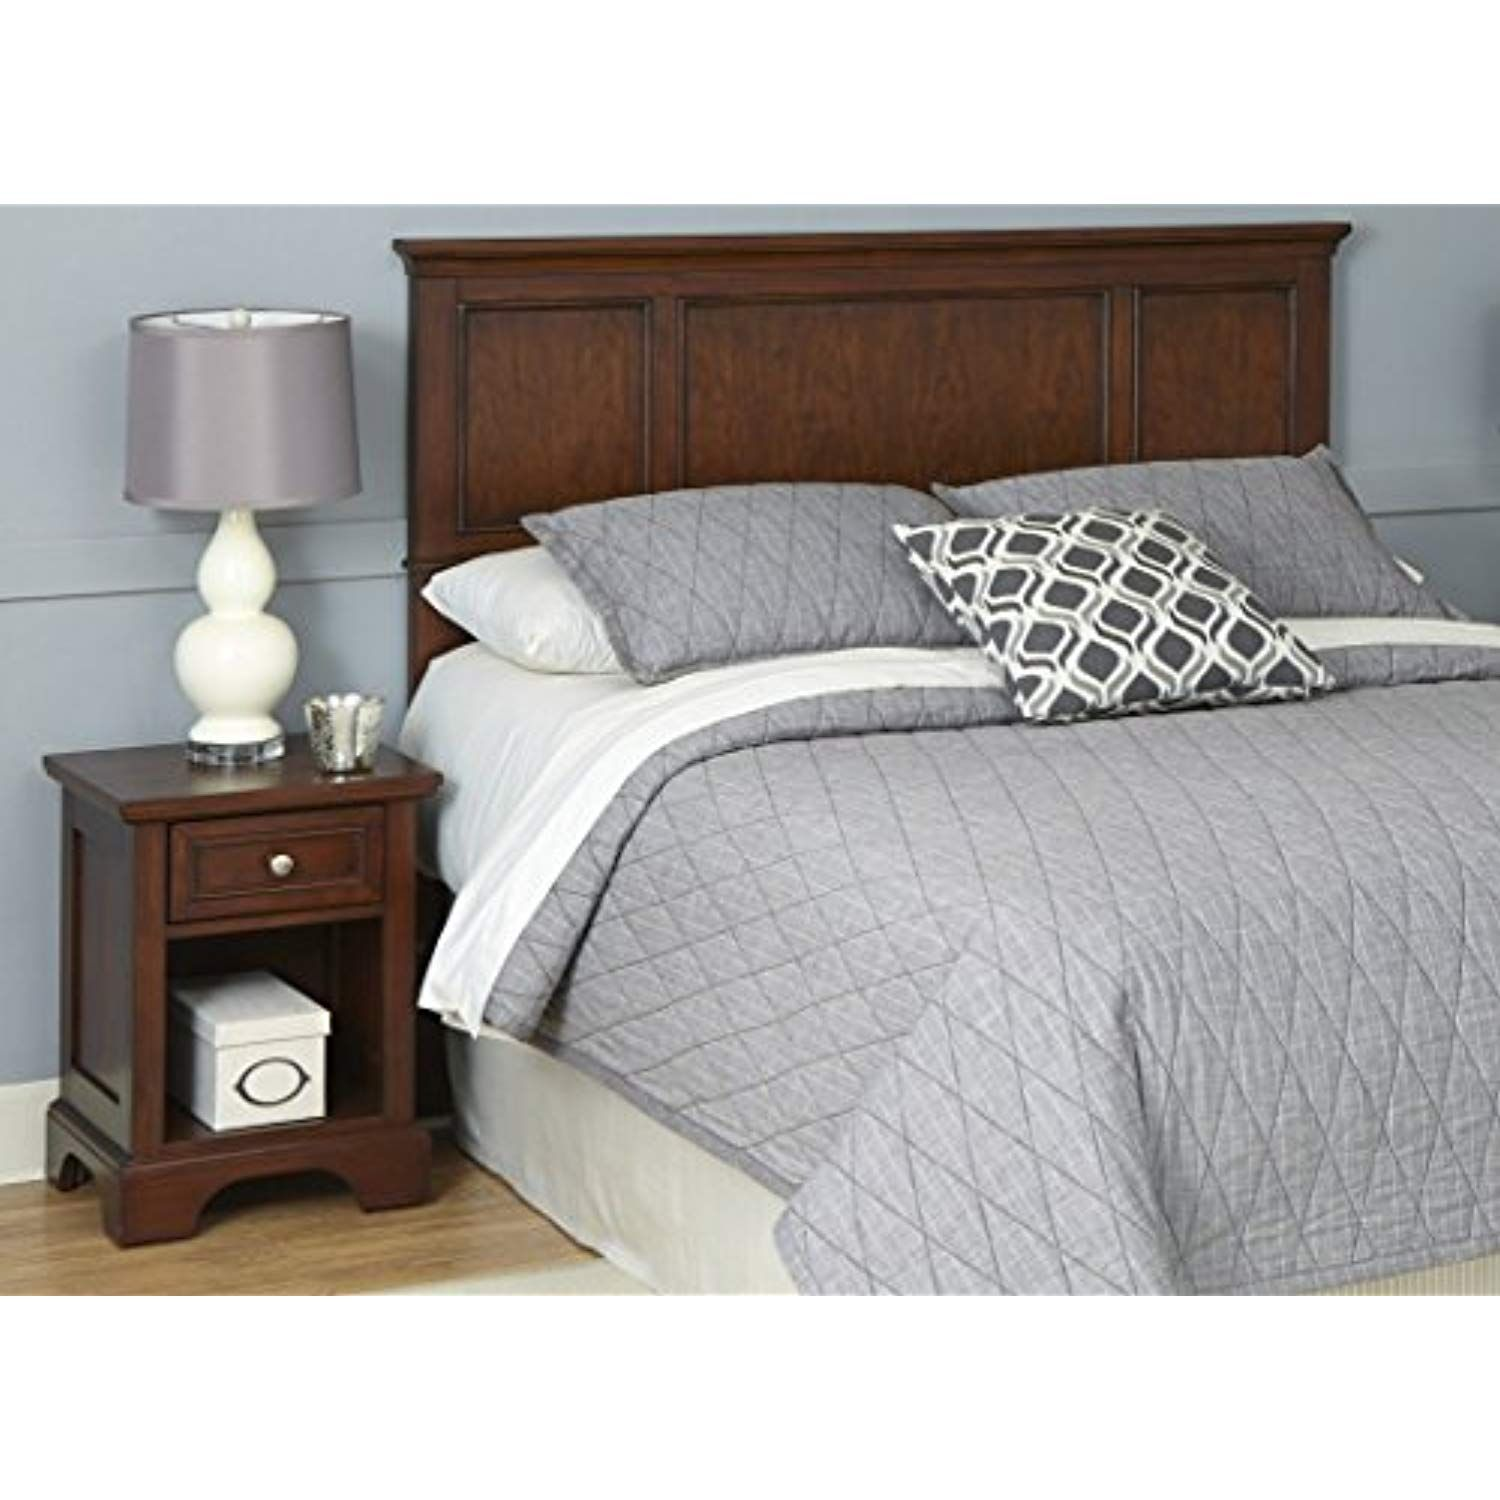 Home Styles Furniture 5529 6016 Chesapeake Headboard And Two Night Stands King California Read More Reviews Of The Product By Visiting Link On